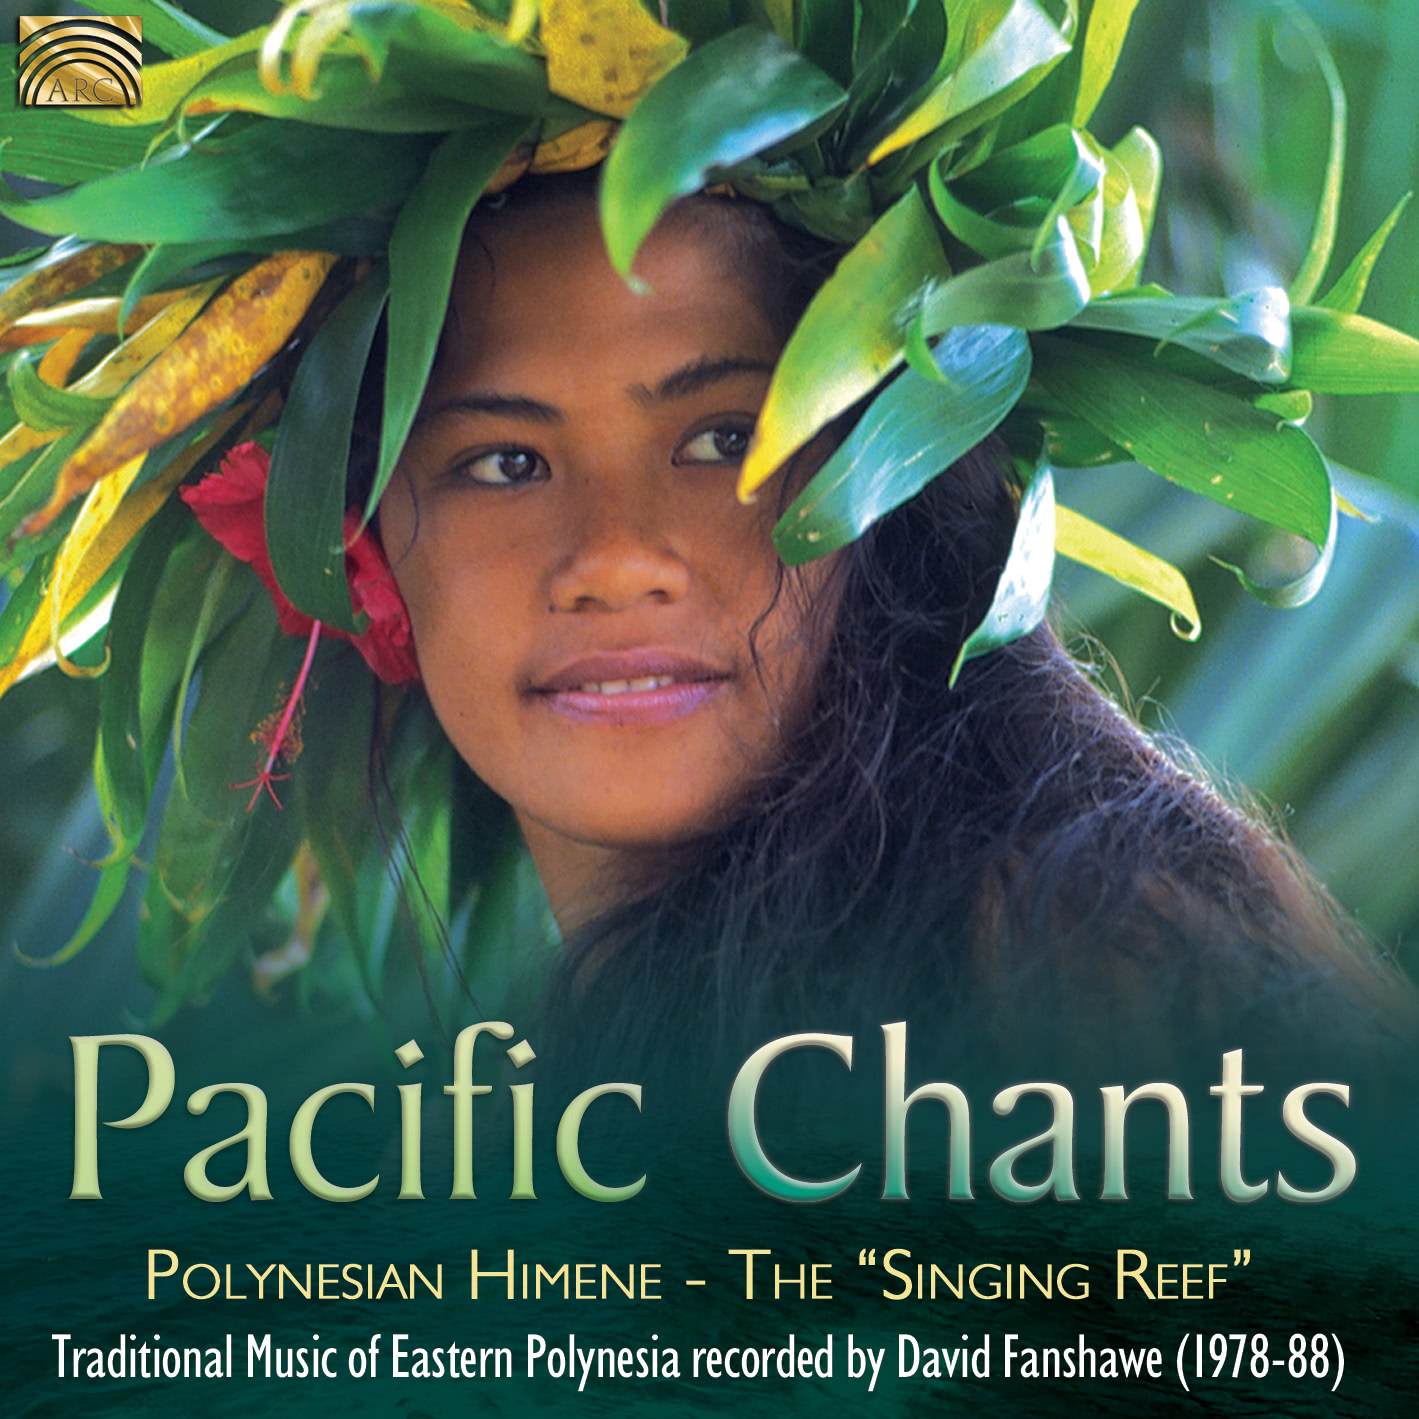 EUCD2729 Pacific Chants